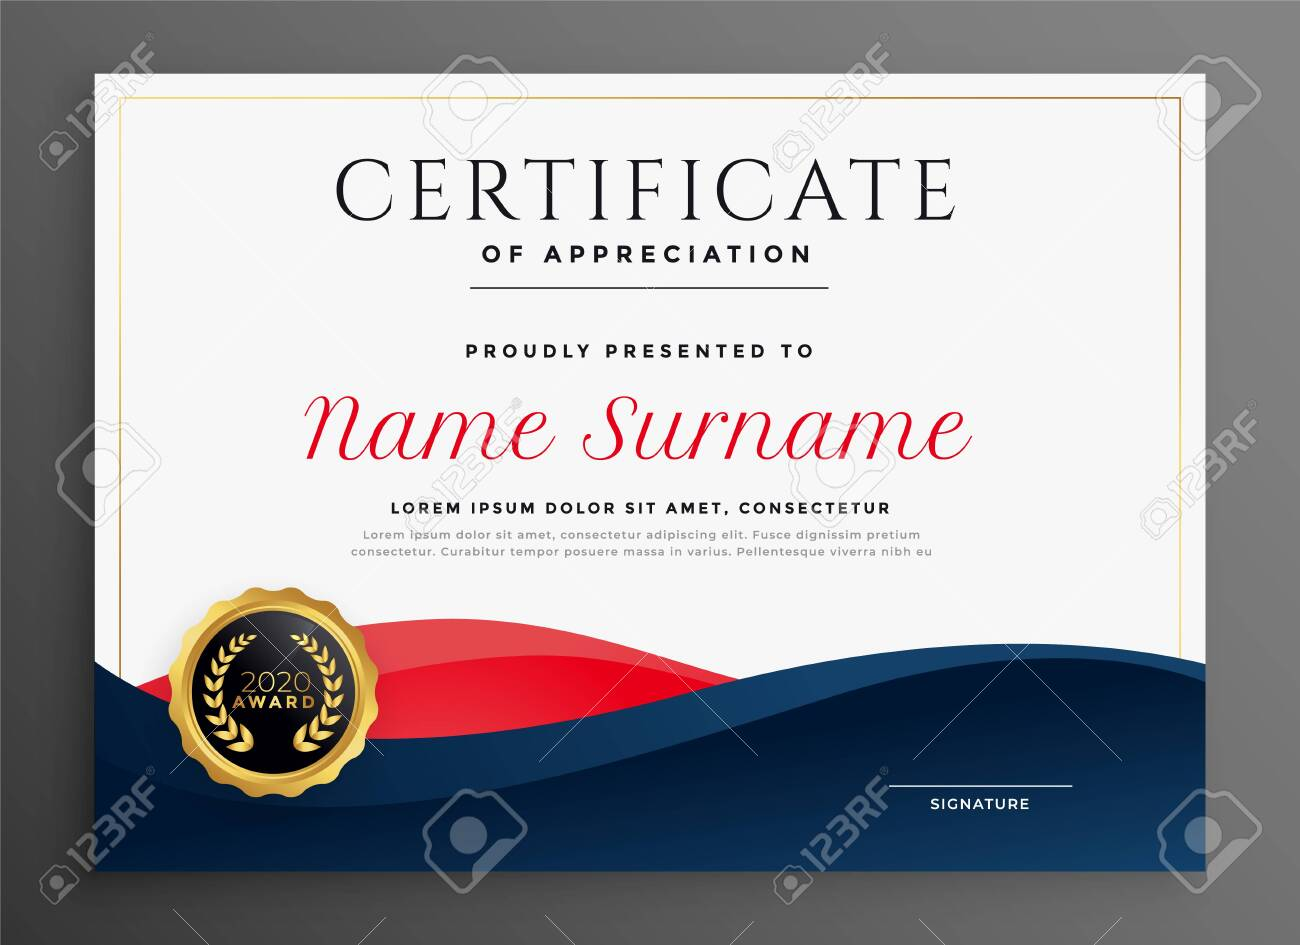 elegant blue and red diploma certificate template design - 126845084